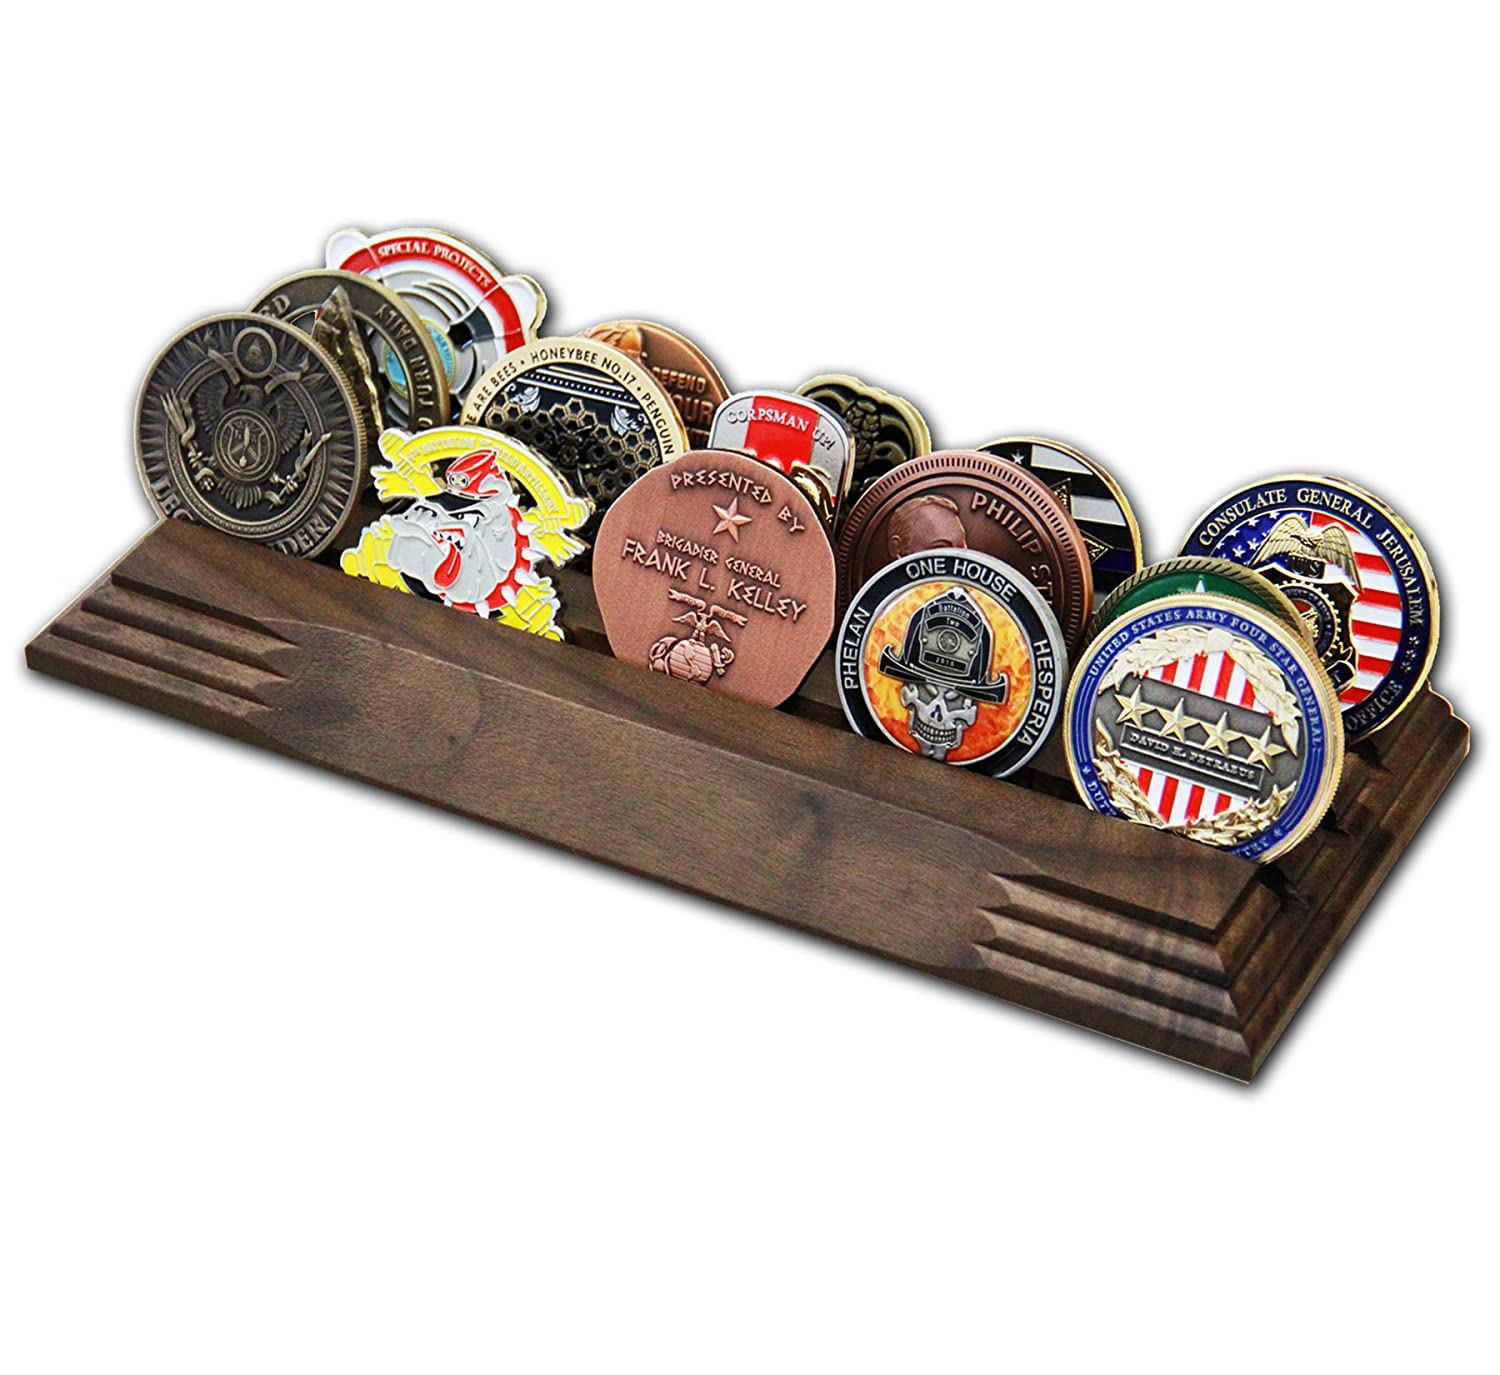 3 Row Challenge Coin Holder - Military Coin Display Stand - Amazing Military Challenge Coin Holder - Holds 14-19 Coins 3 Rows Made in The USA! (Solid Walnut)